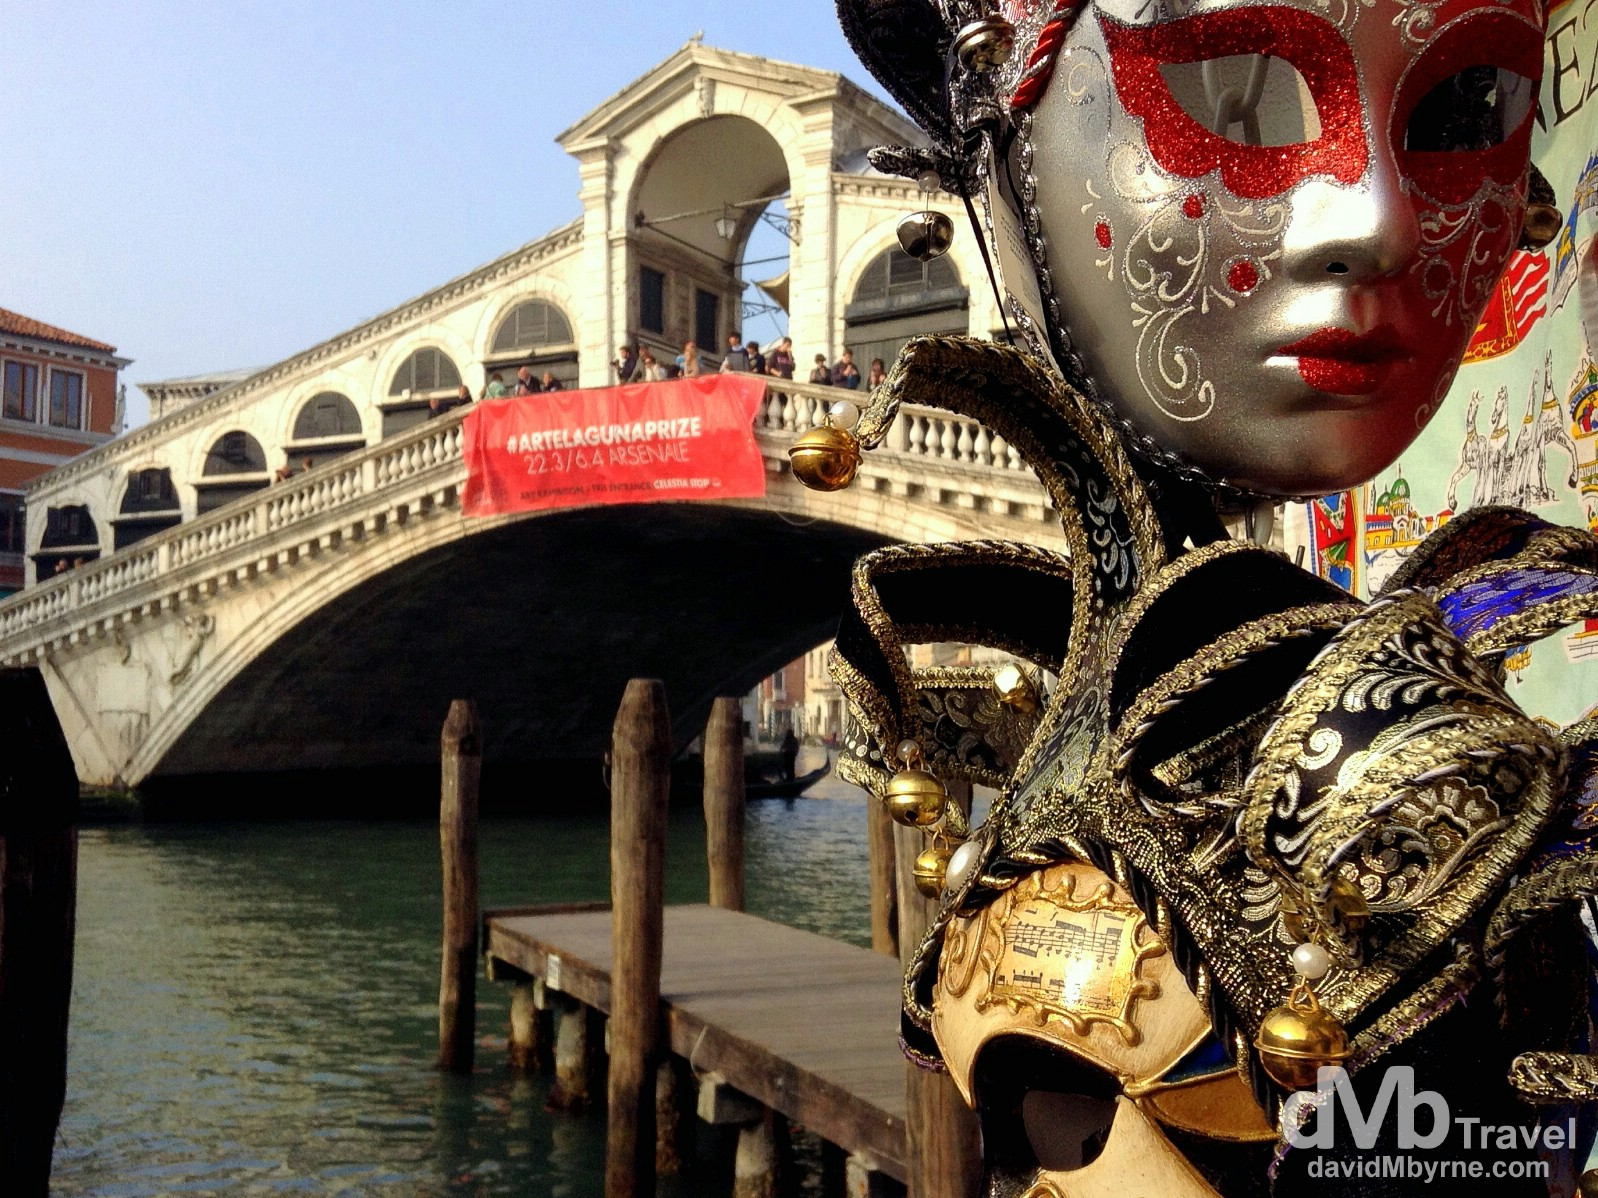 Decorative carnival masks by the Rialto Bridge in Venice, Veneto, Italy. March 19th, 2014.